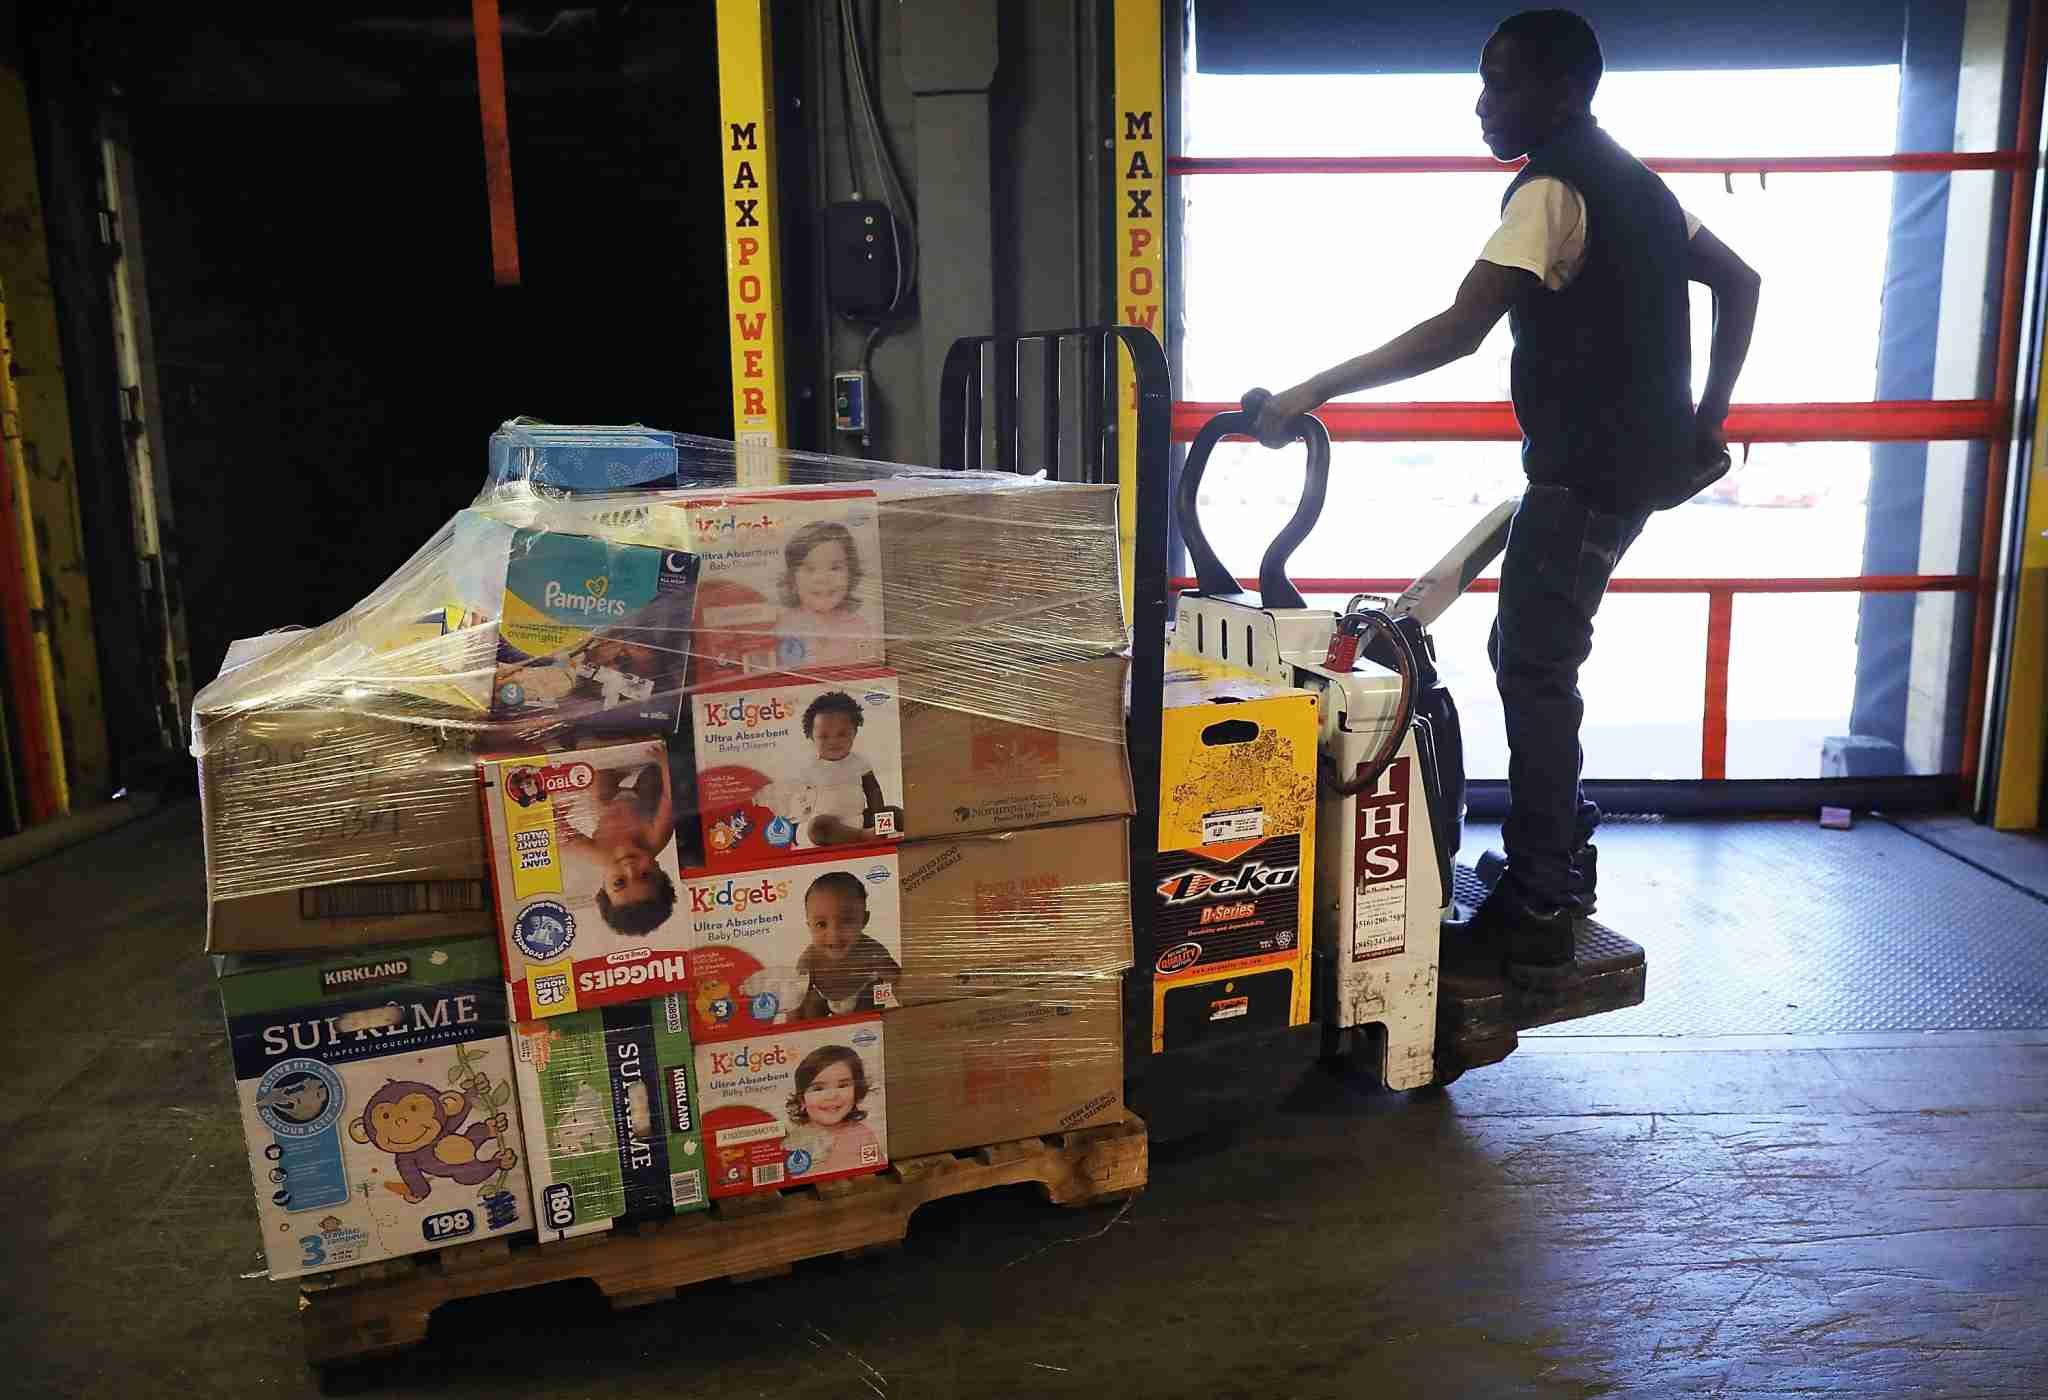 NEW YORK, NY - SEPTEMBER 29: A worker for the Food Bank For New York City moves a pallet of food headed to needy Americans in hurricane ravaged Puerto Rico on September 29, 2017 in New York City. Two trucks filled with bottled water, diapers, personal care items and food left the food bank